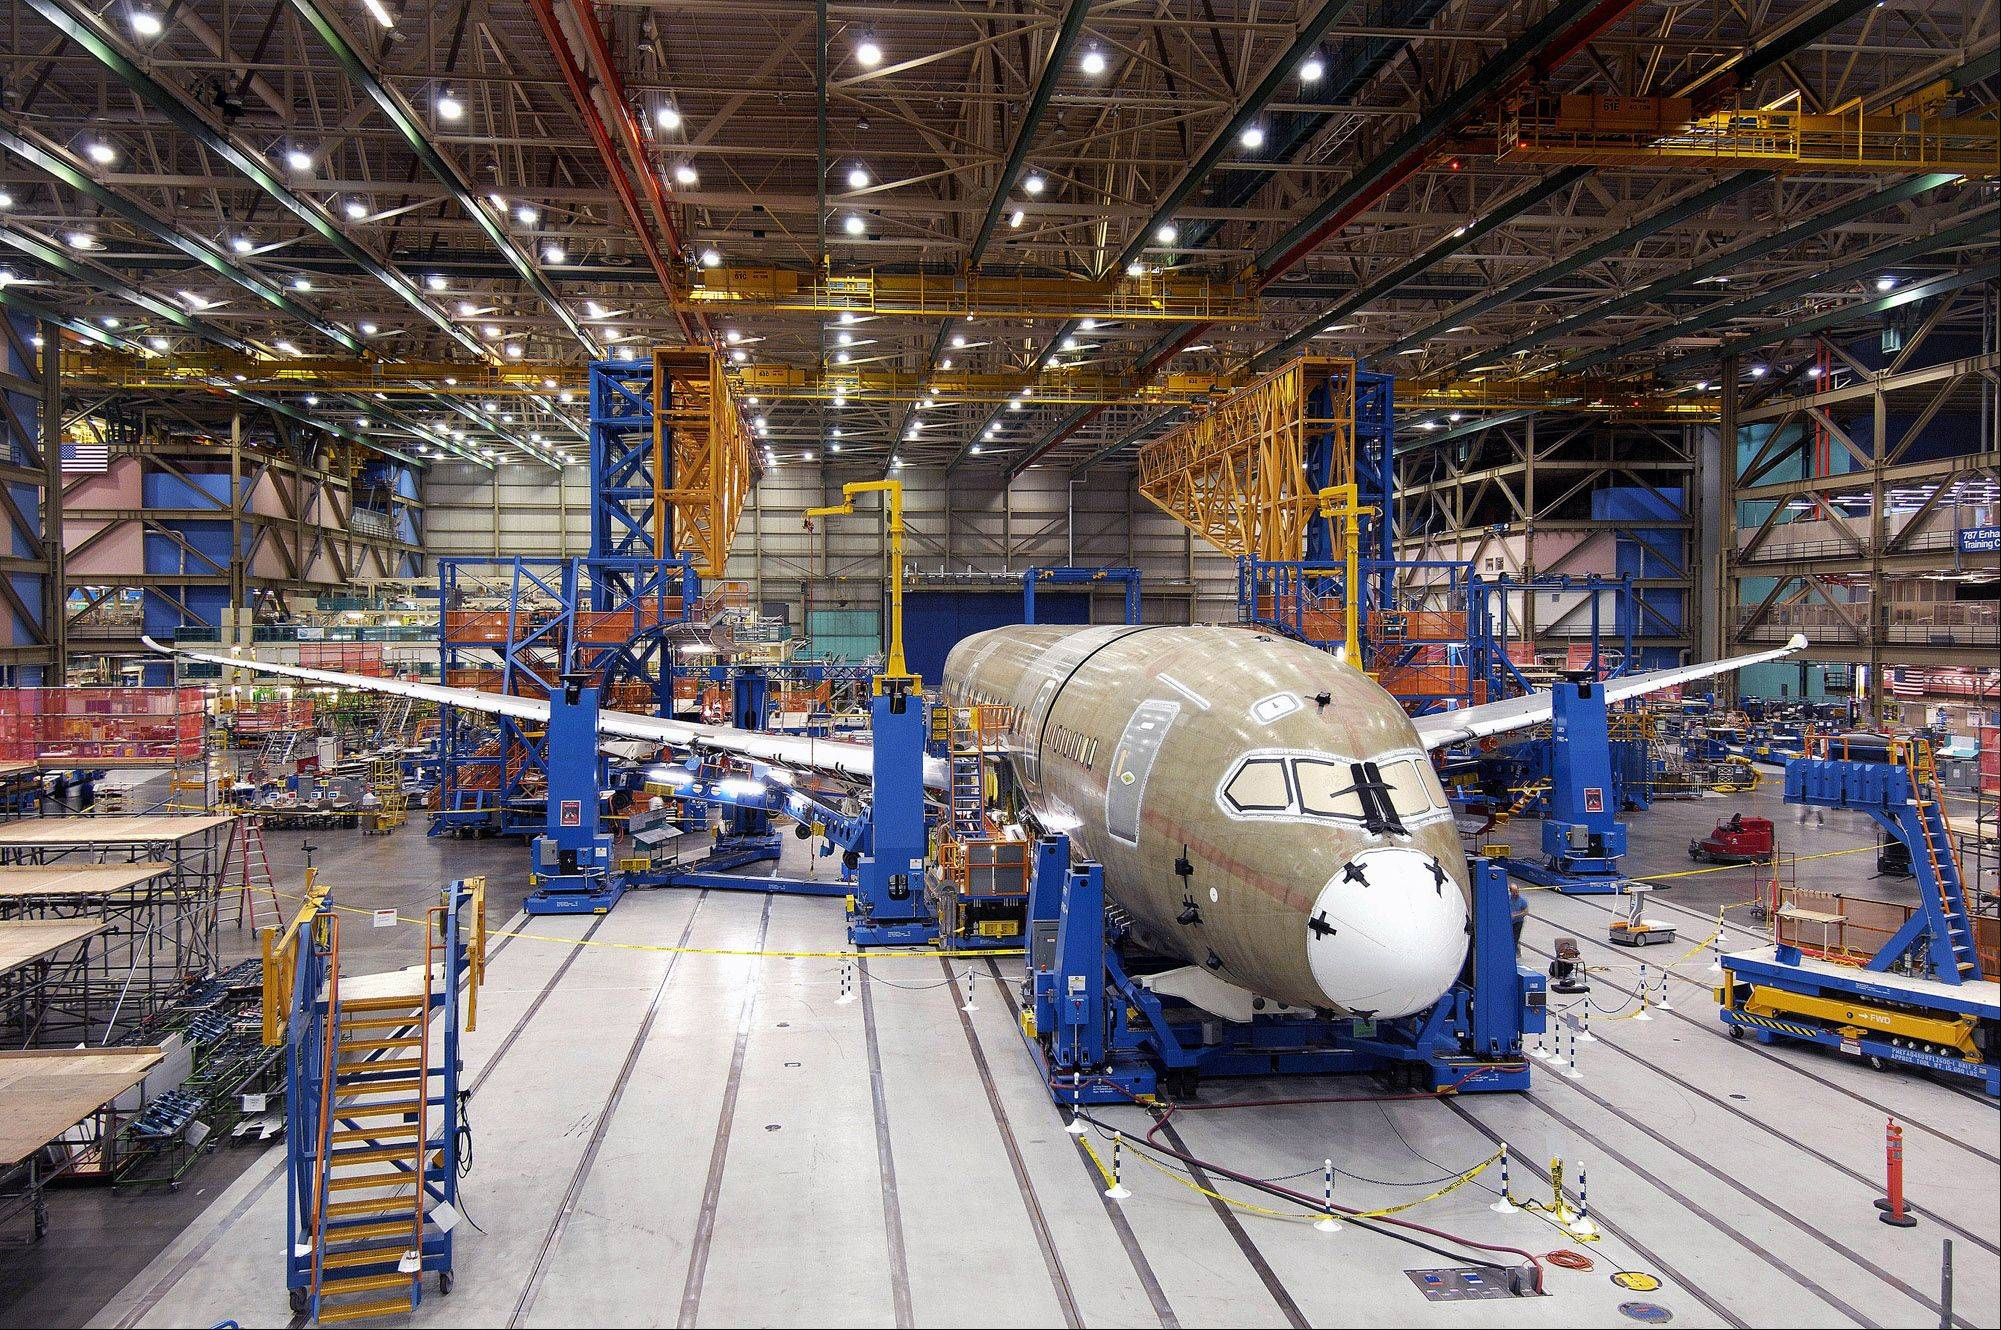 With delay after delay plaguing the aircraft's entry into service, Boeing ultimately had built about 40 by the time it got final Federal Aviation Administration certification.